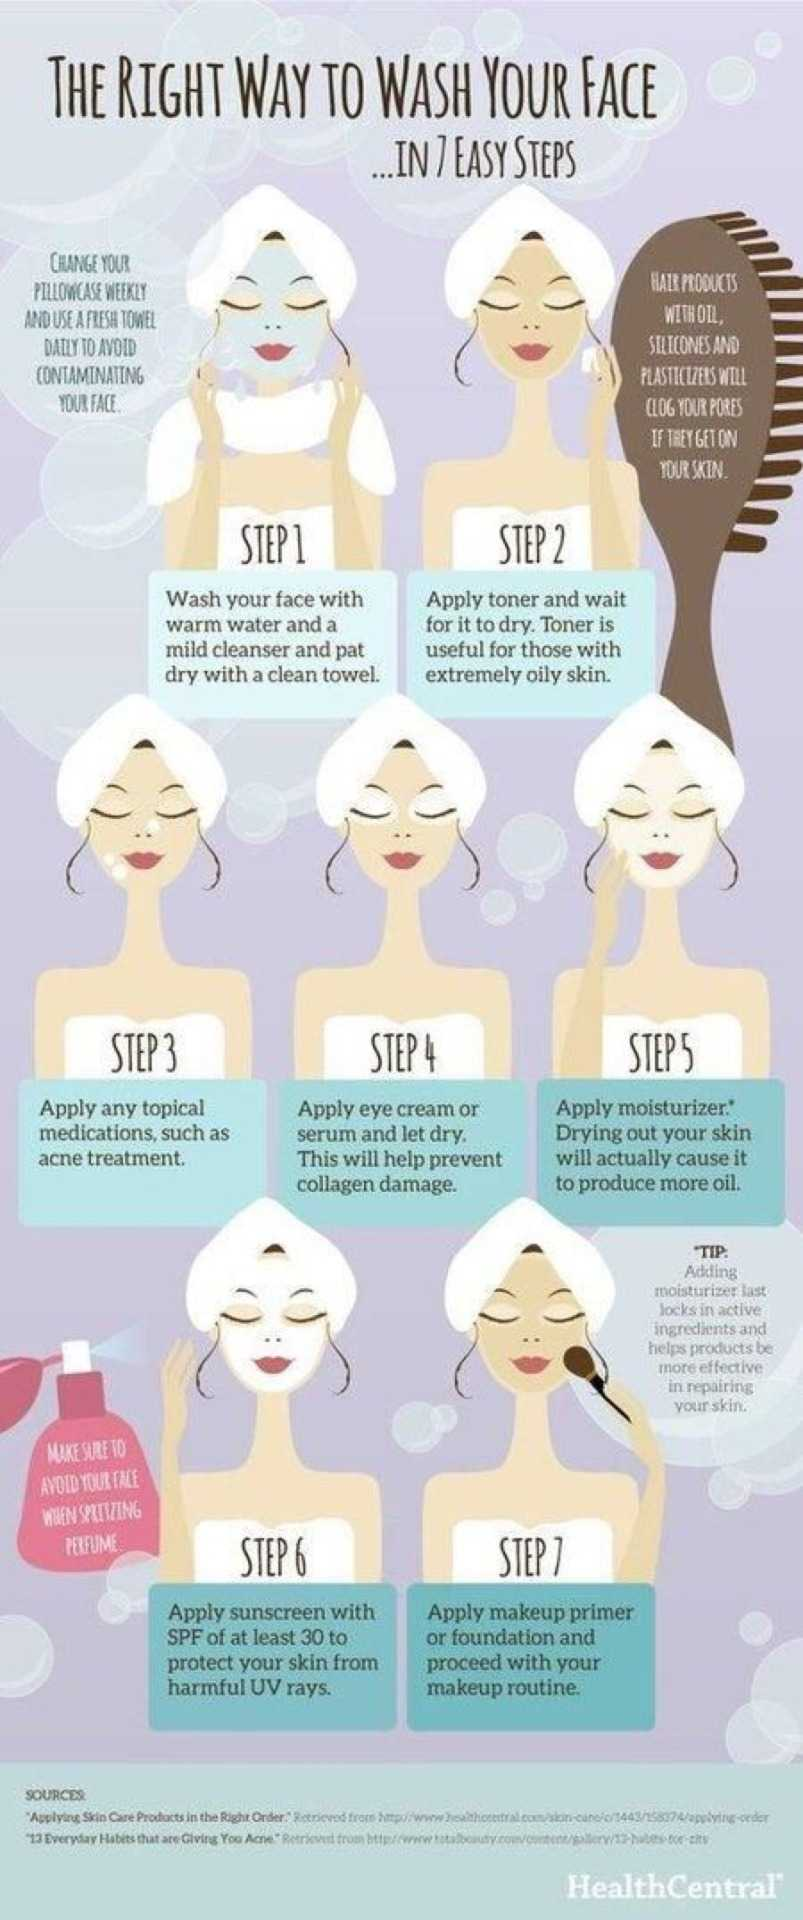 How To Wash Your Face